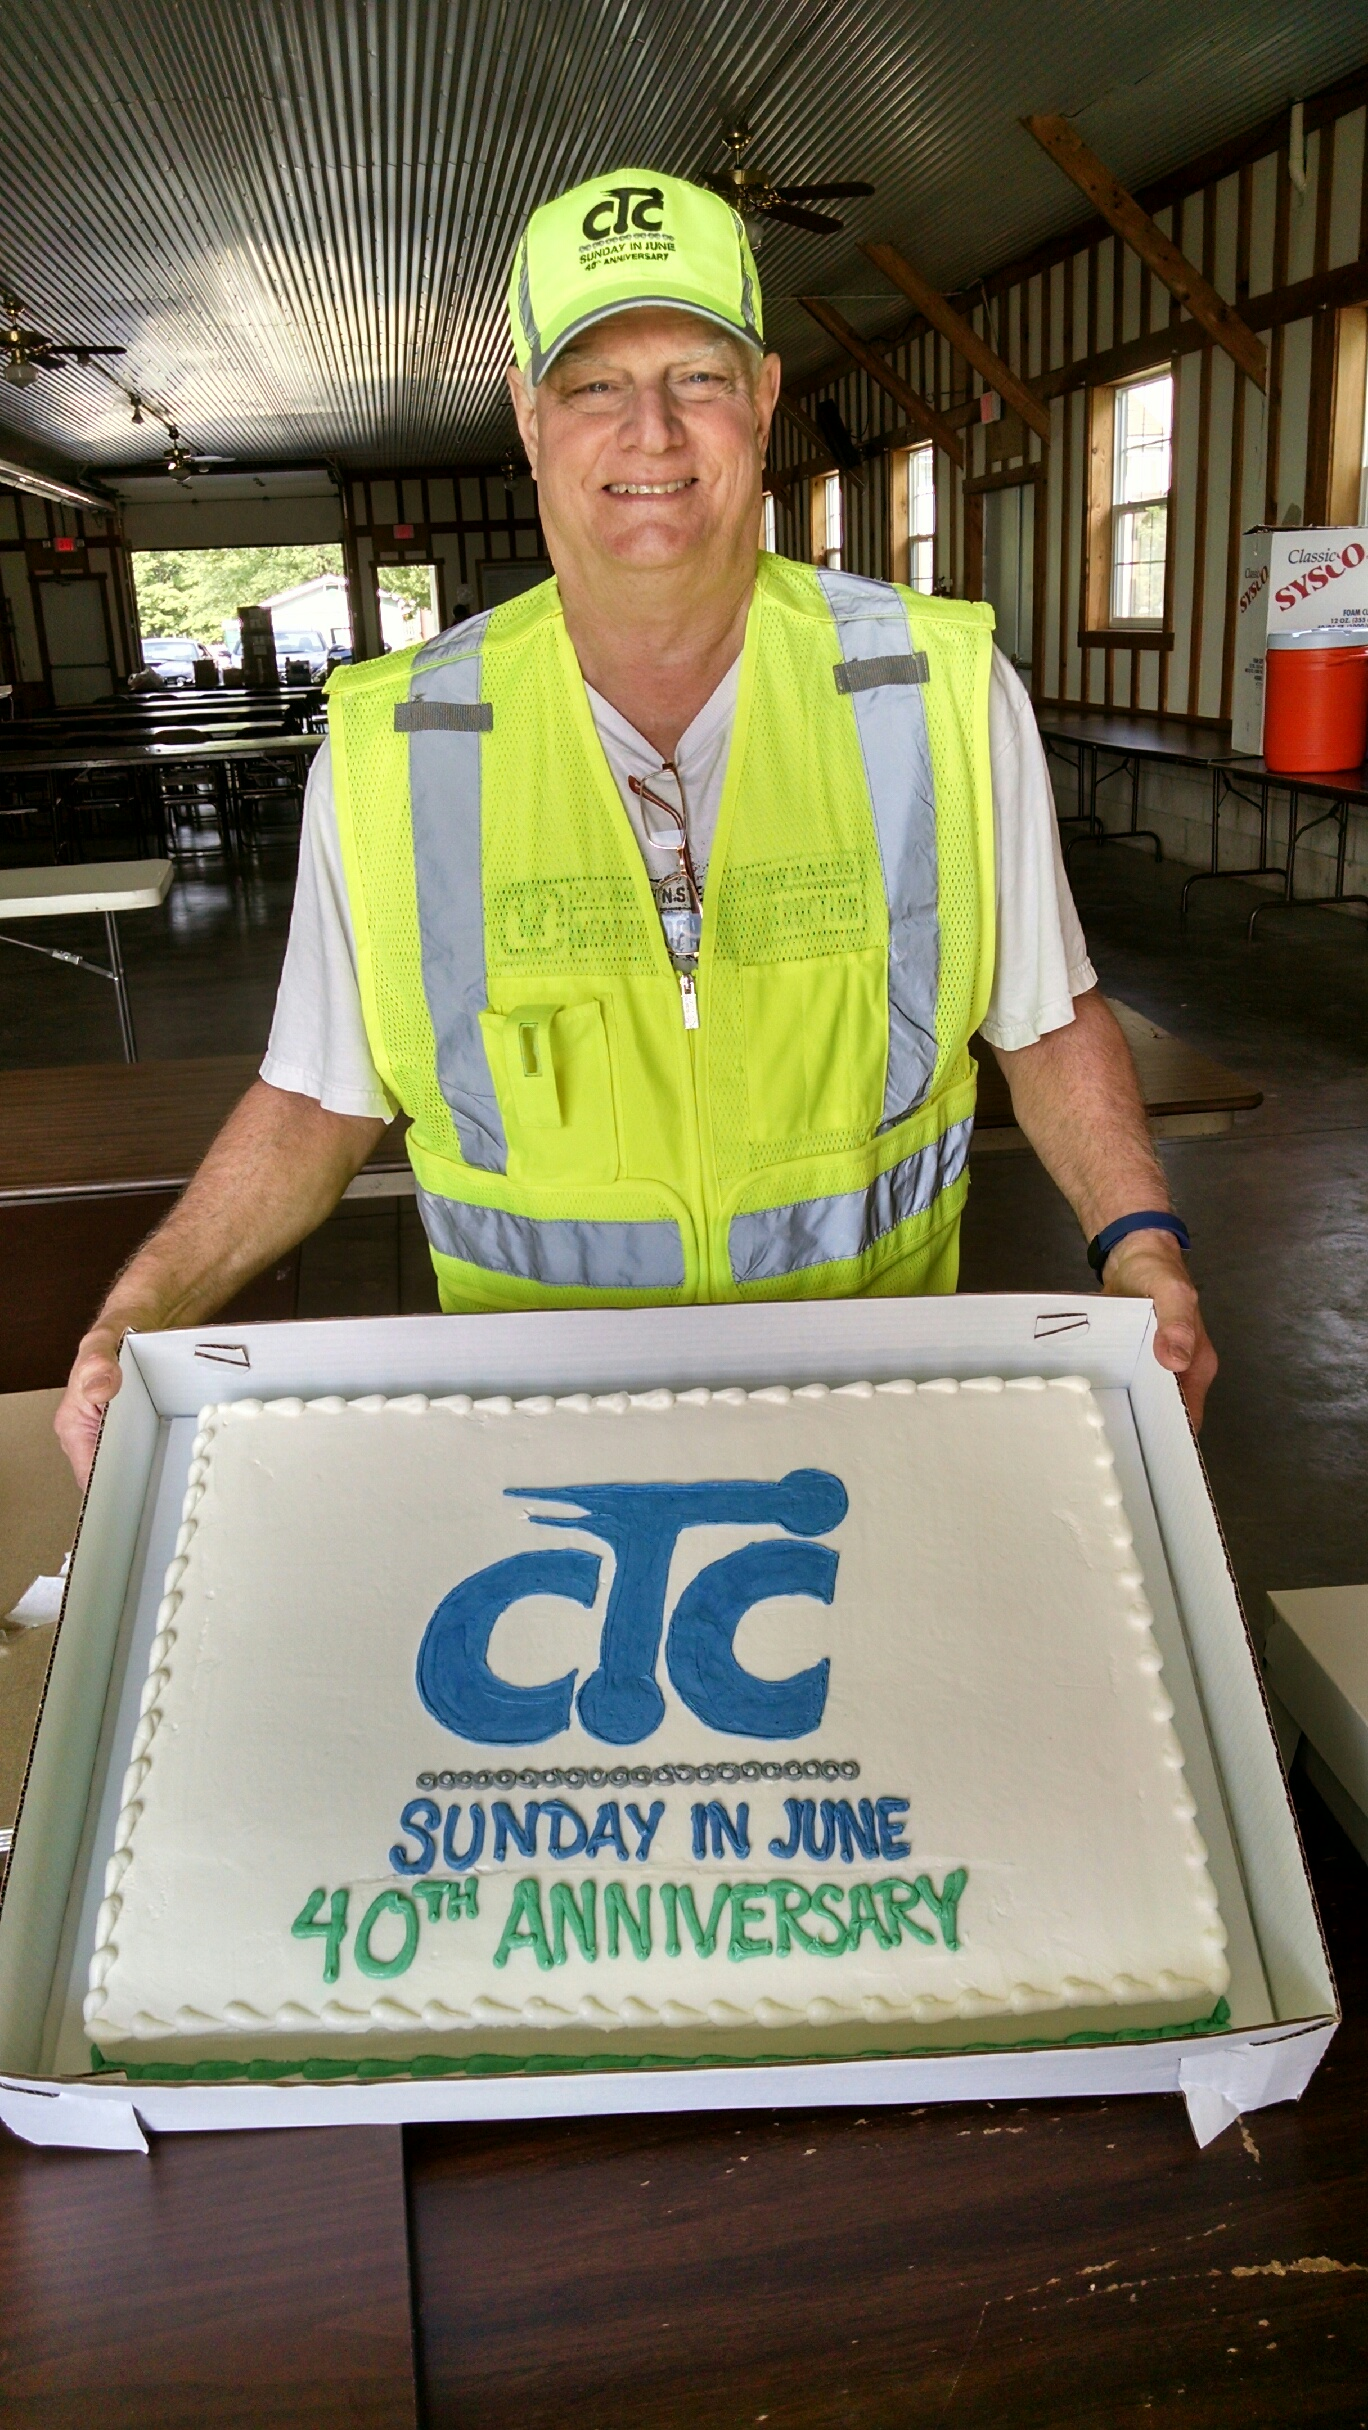 40th anniversary cake with ride director Ron Boetger